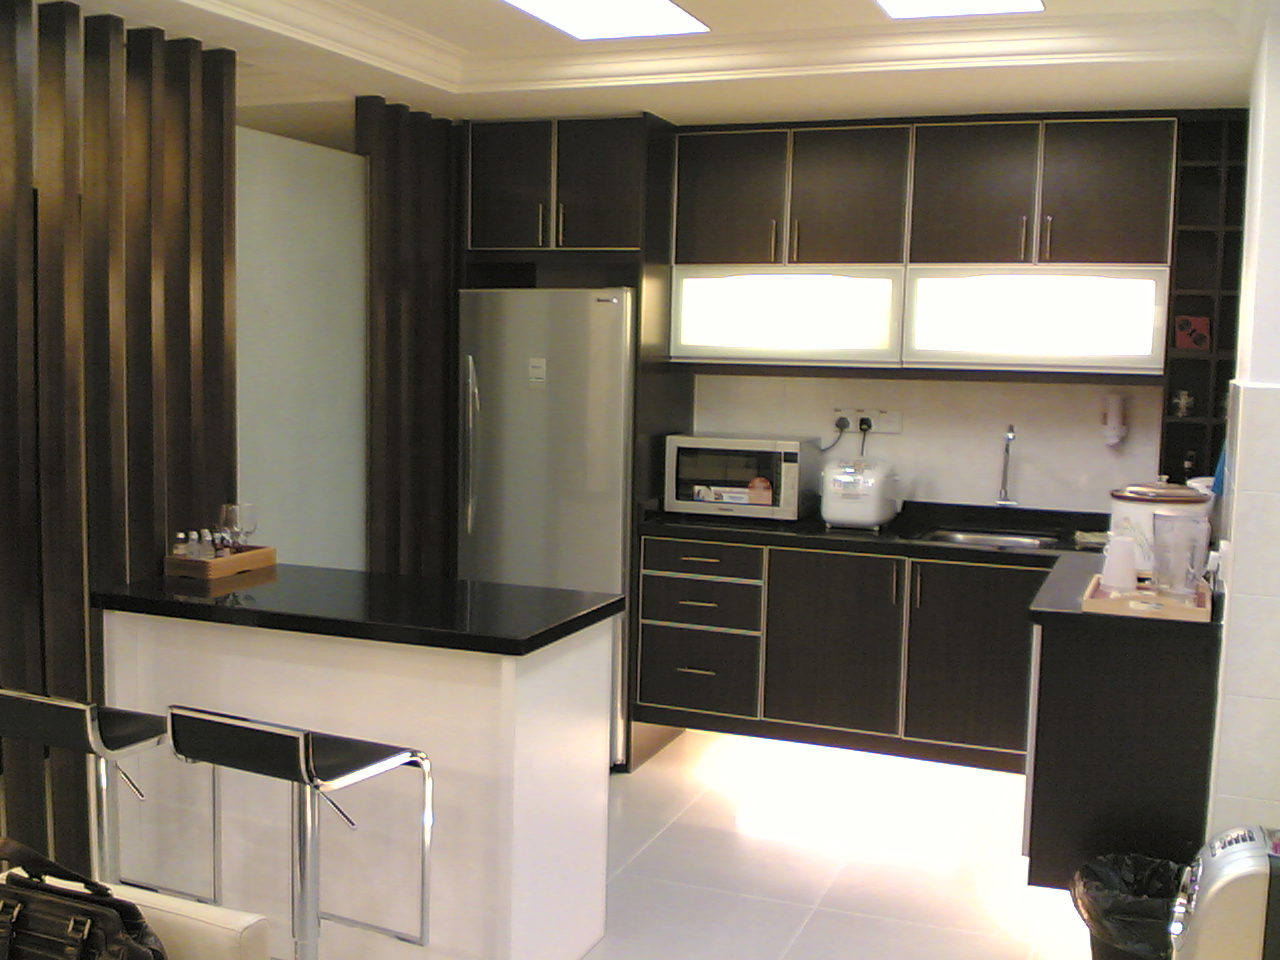 Magnificent Modern Small Kitchen Design Ideas 1280 x 960 · 335 kB · jpeg